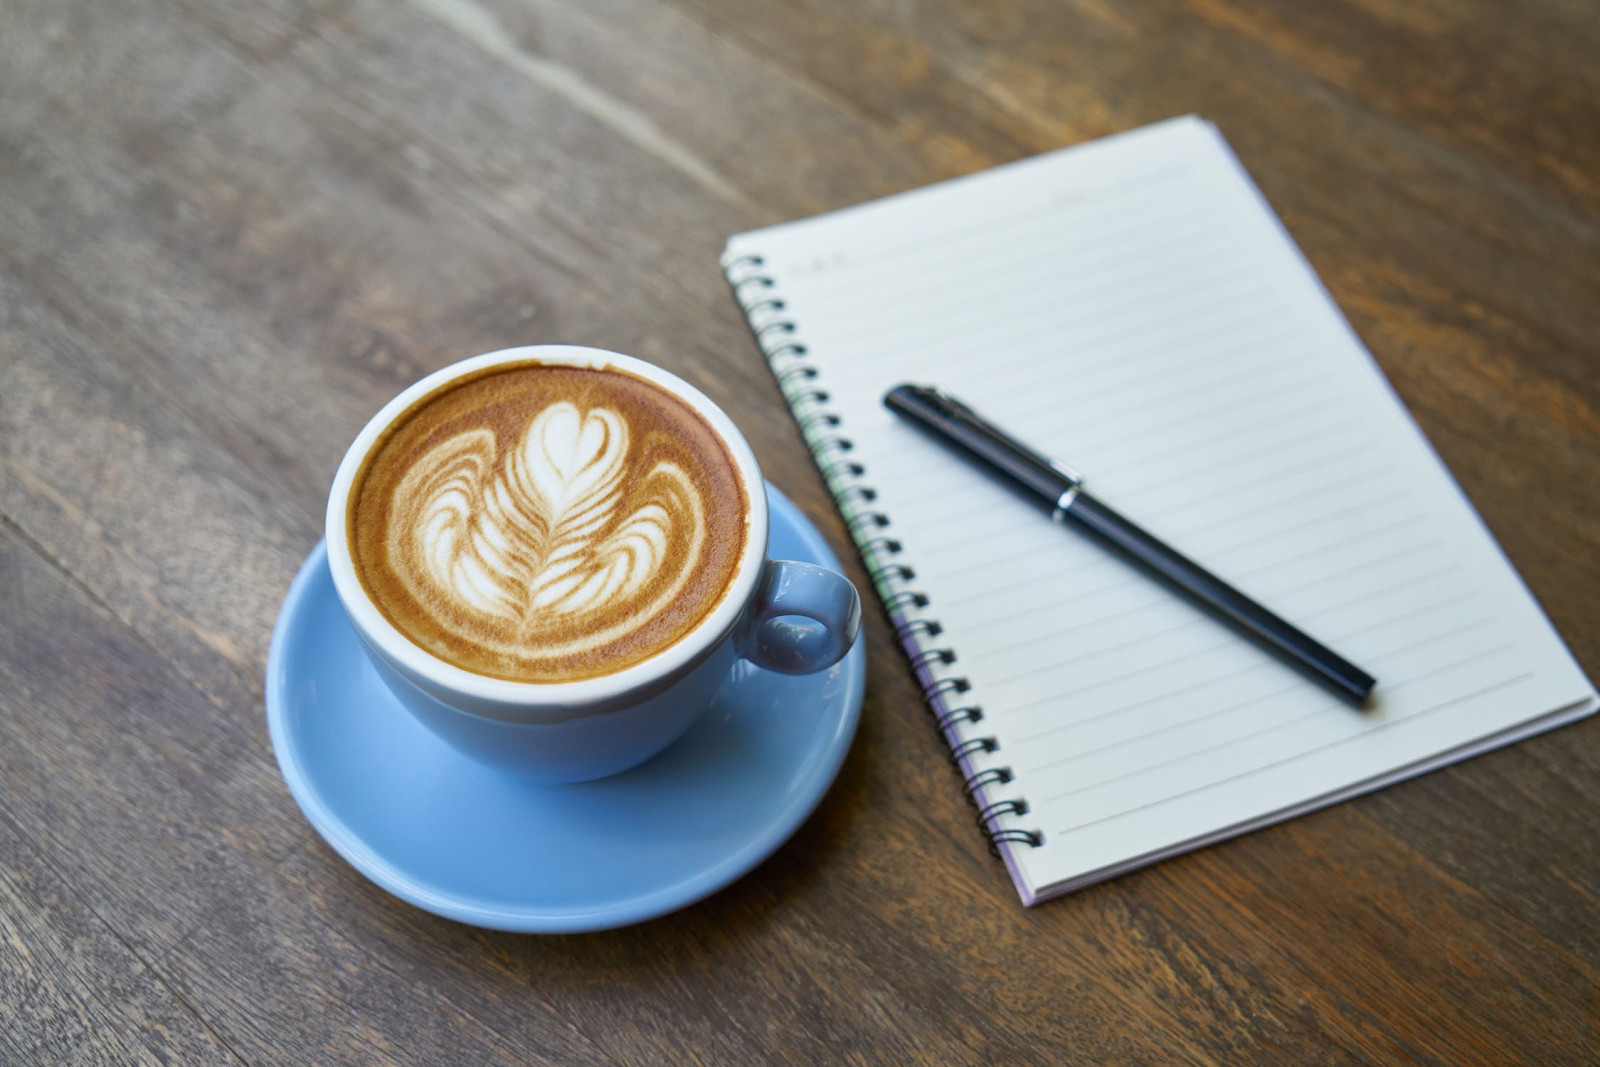 A latte sits next to a journal perfect for schoolwork or studying.